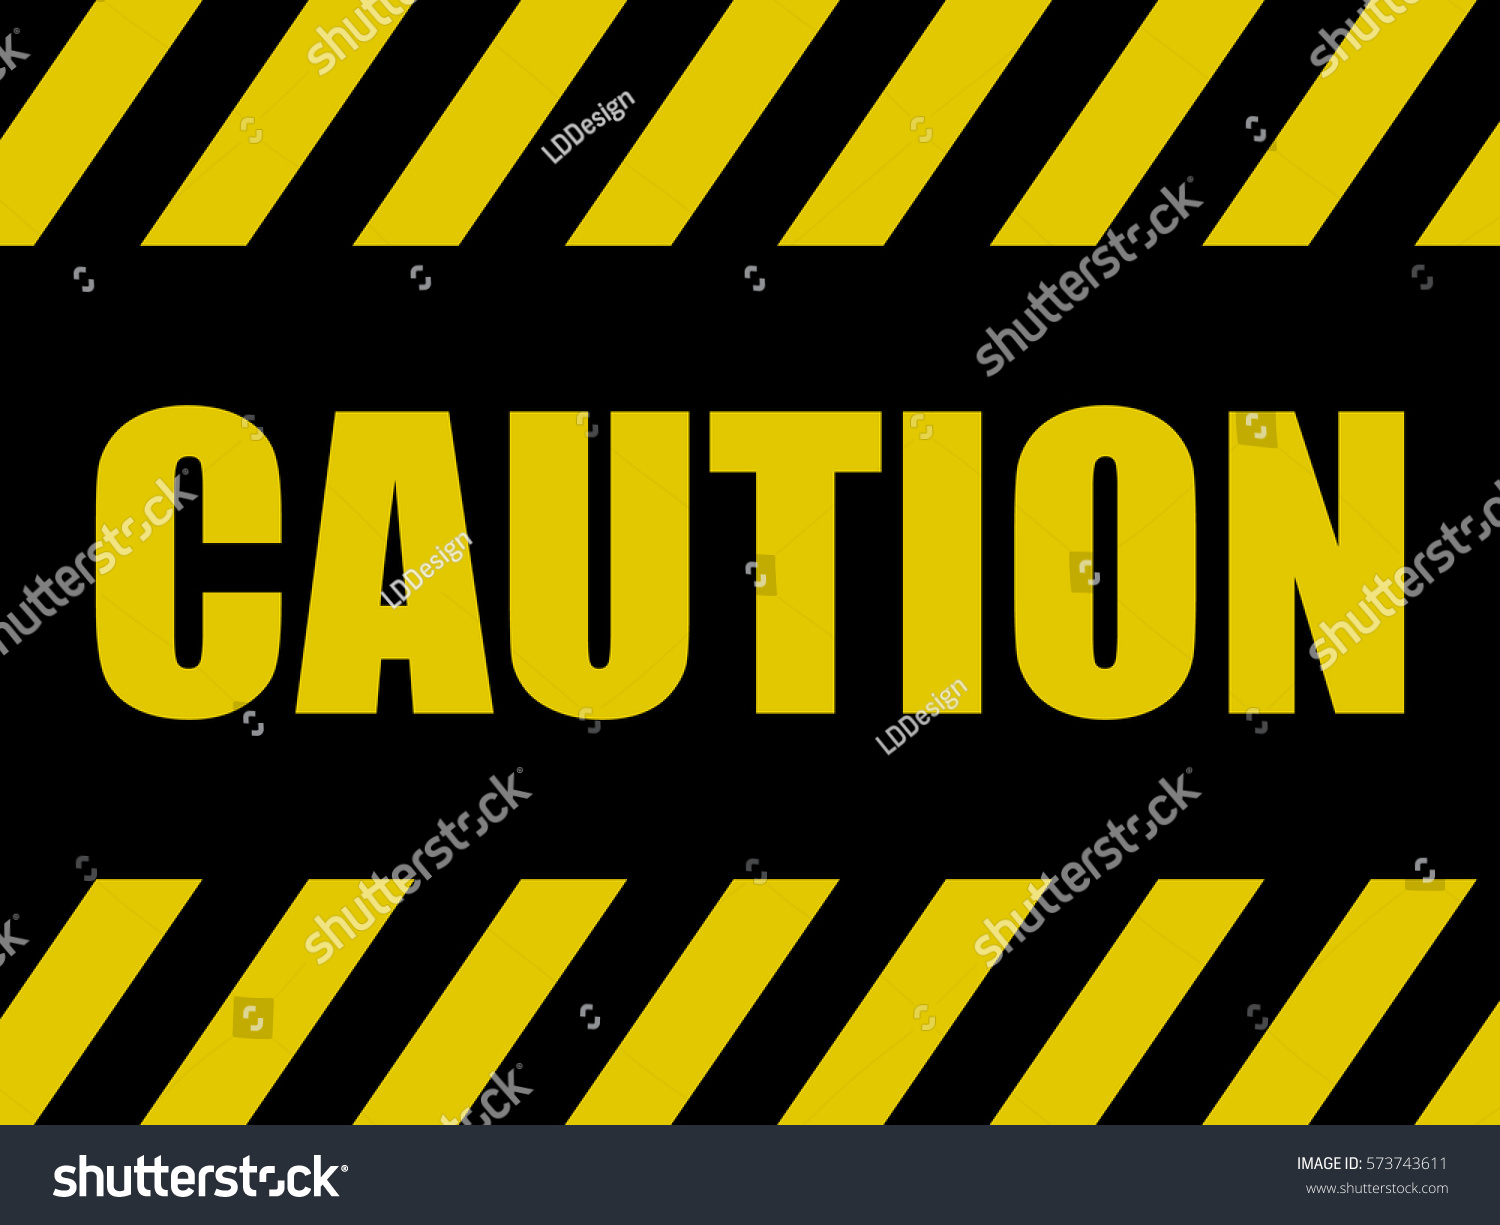 Caution Sign Background Black Yellow Board Stock Vector